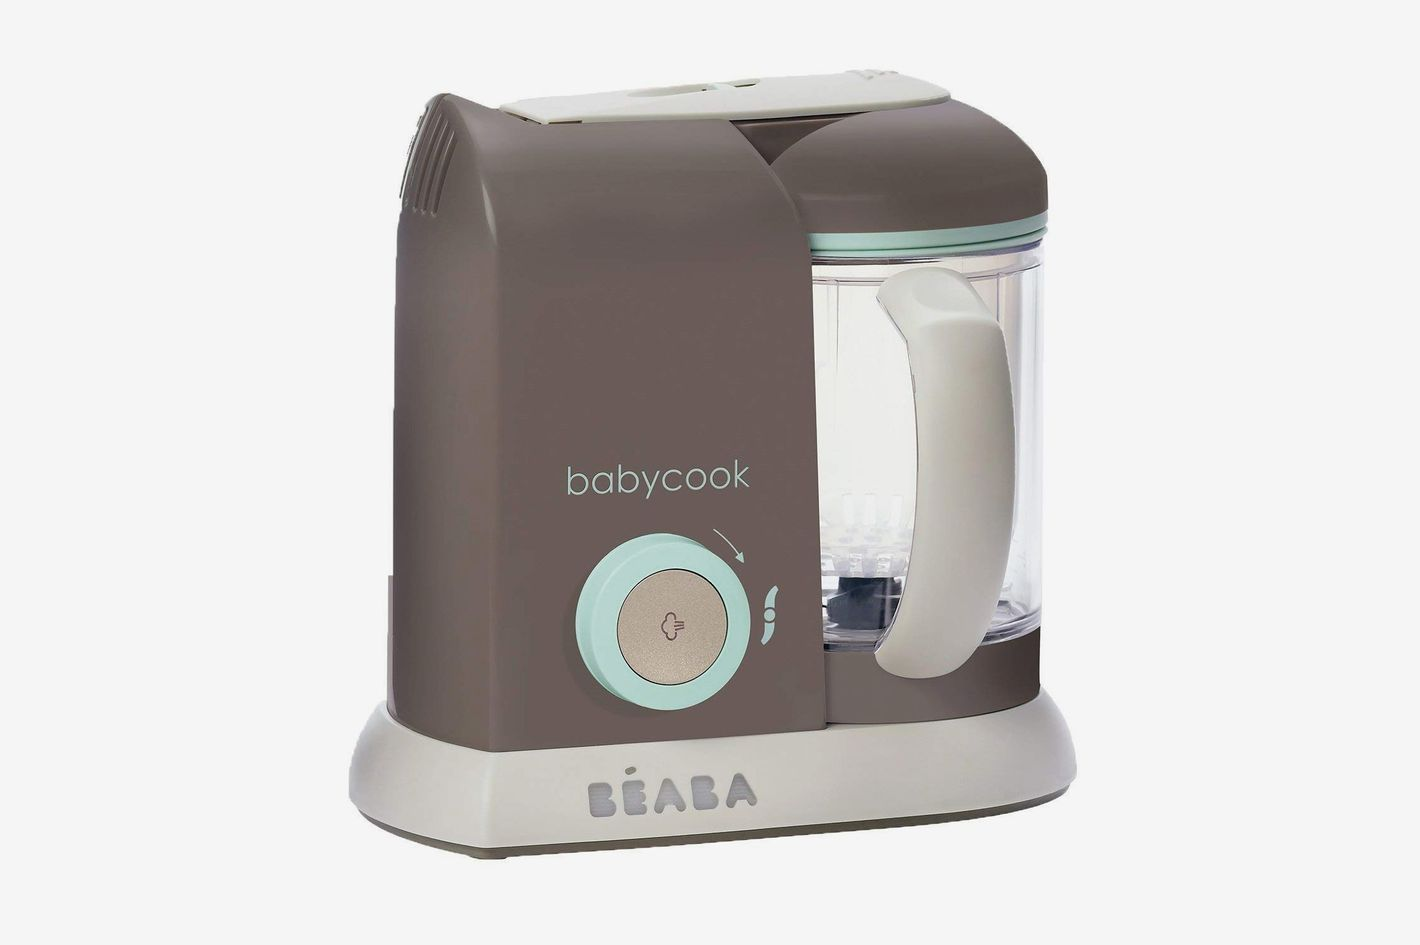 BEABA Babycook 4-in-1 Steam Cooker and Blender, 4.5 cups